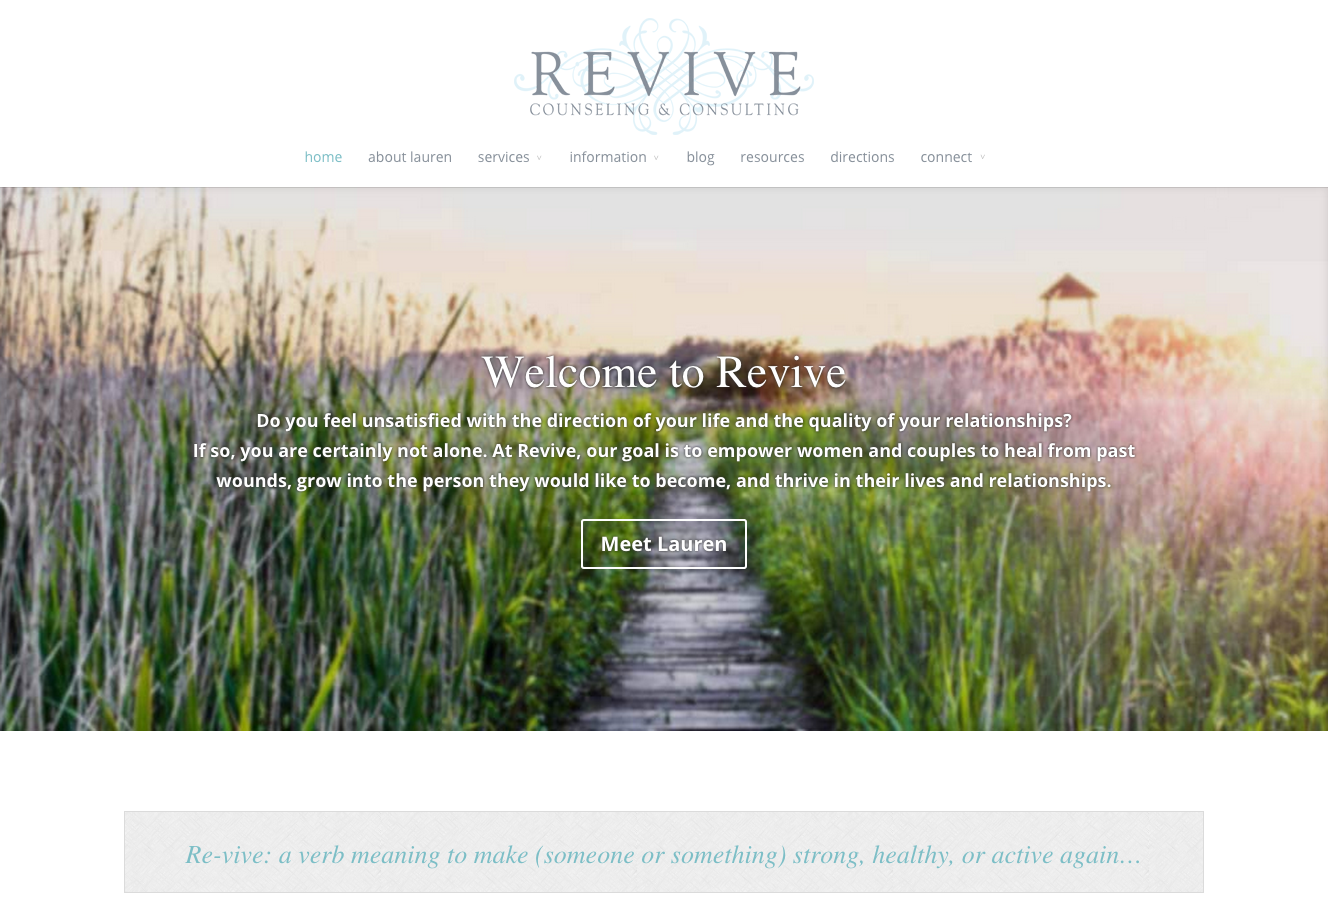 Revive website example 1